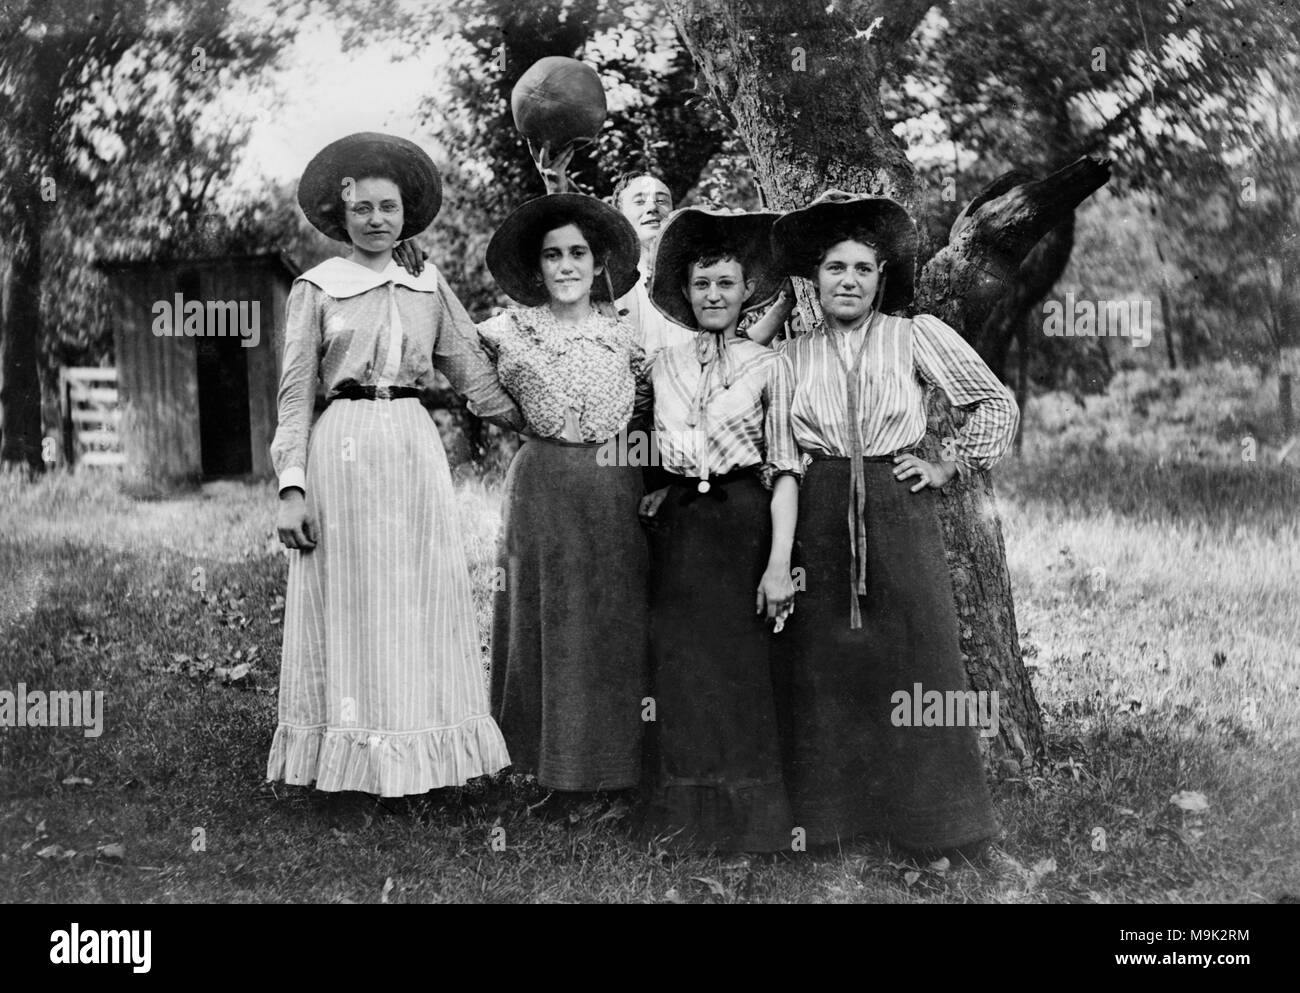 A young man with a basketball photobombs four women posing for a picture, ca. 1910. - Stock Image